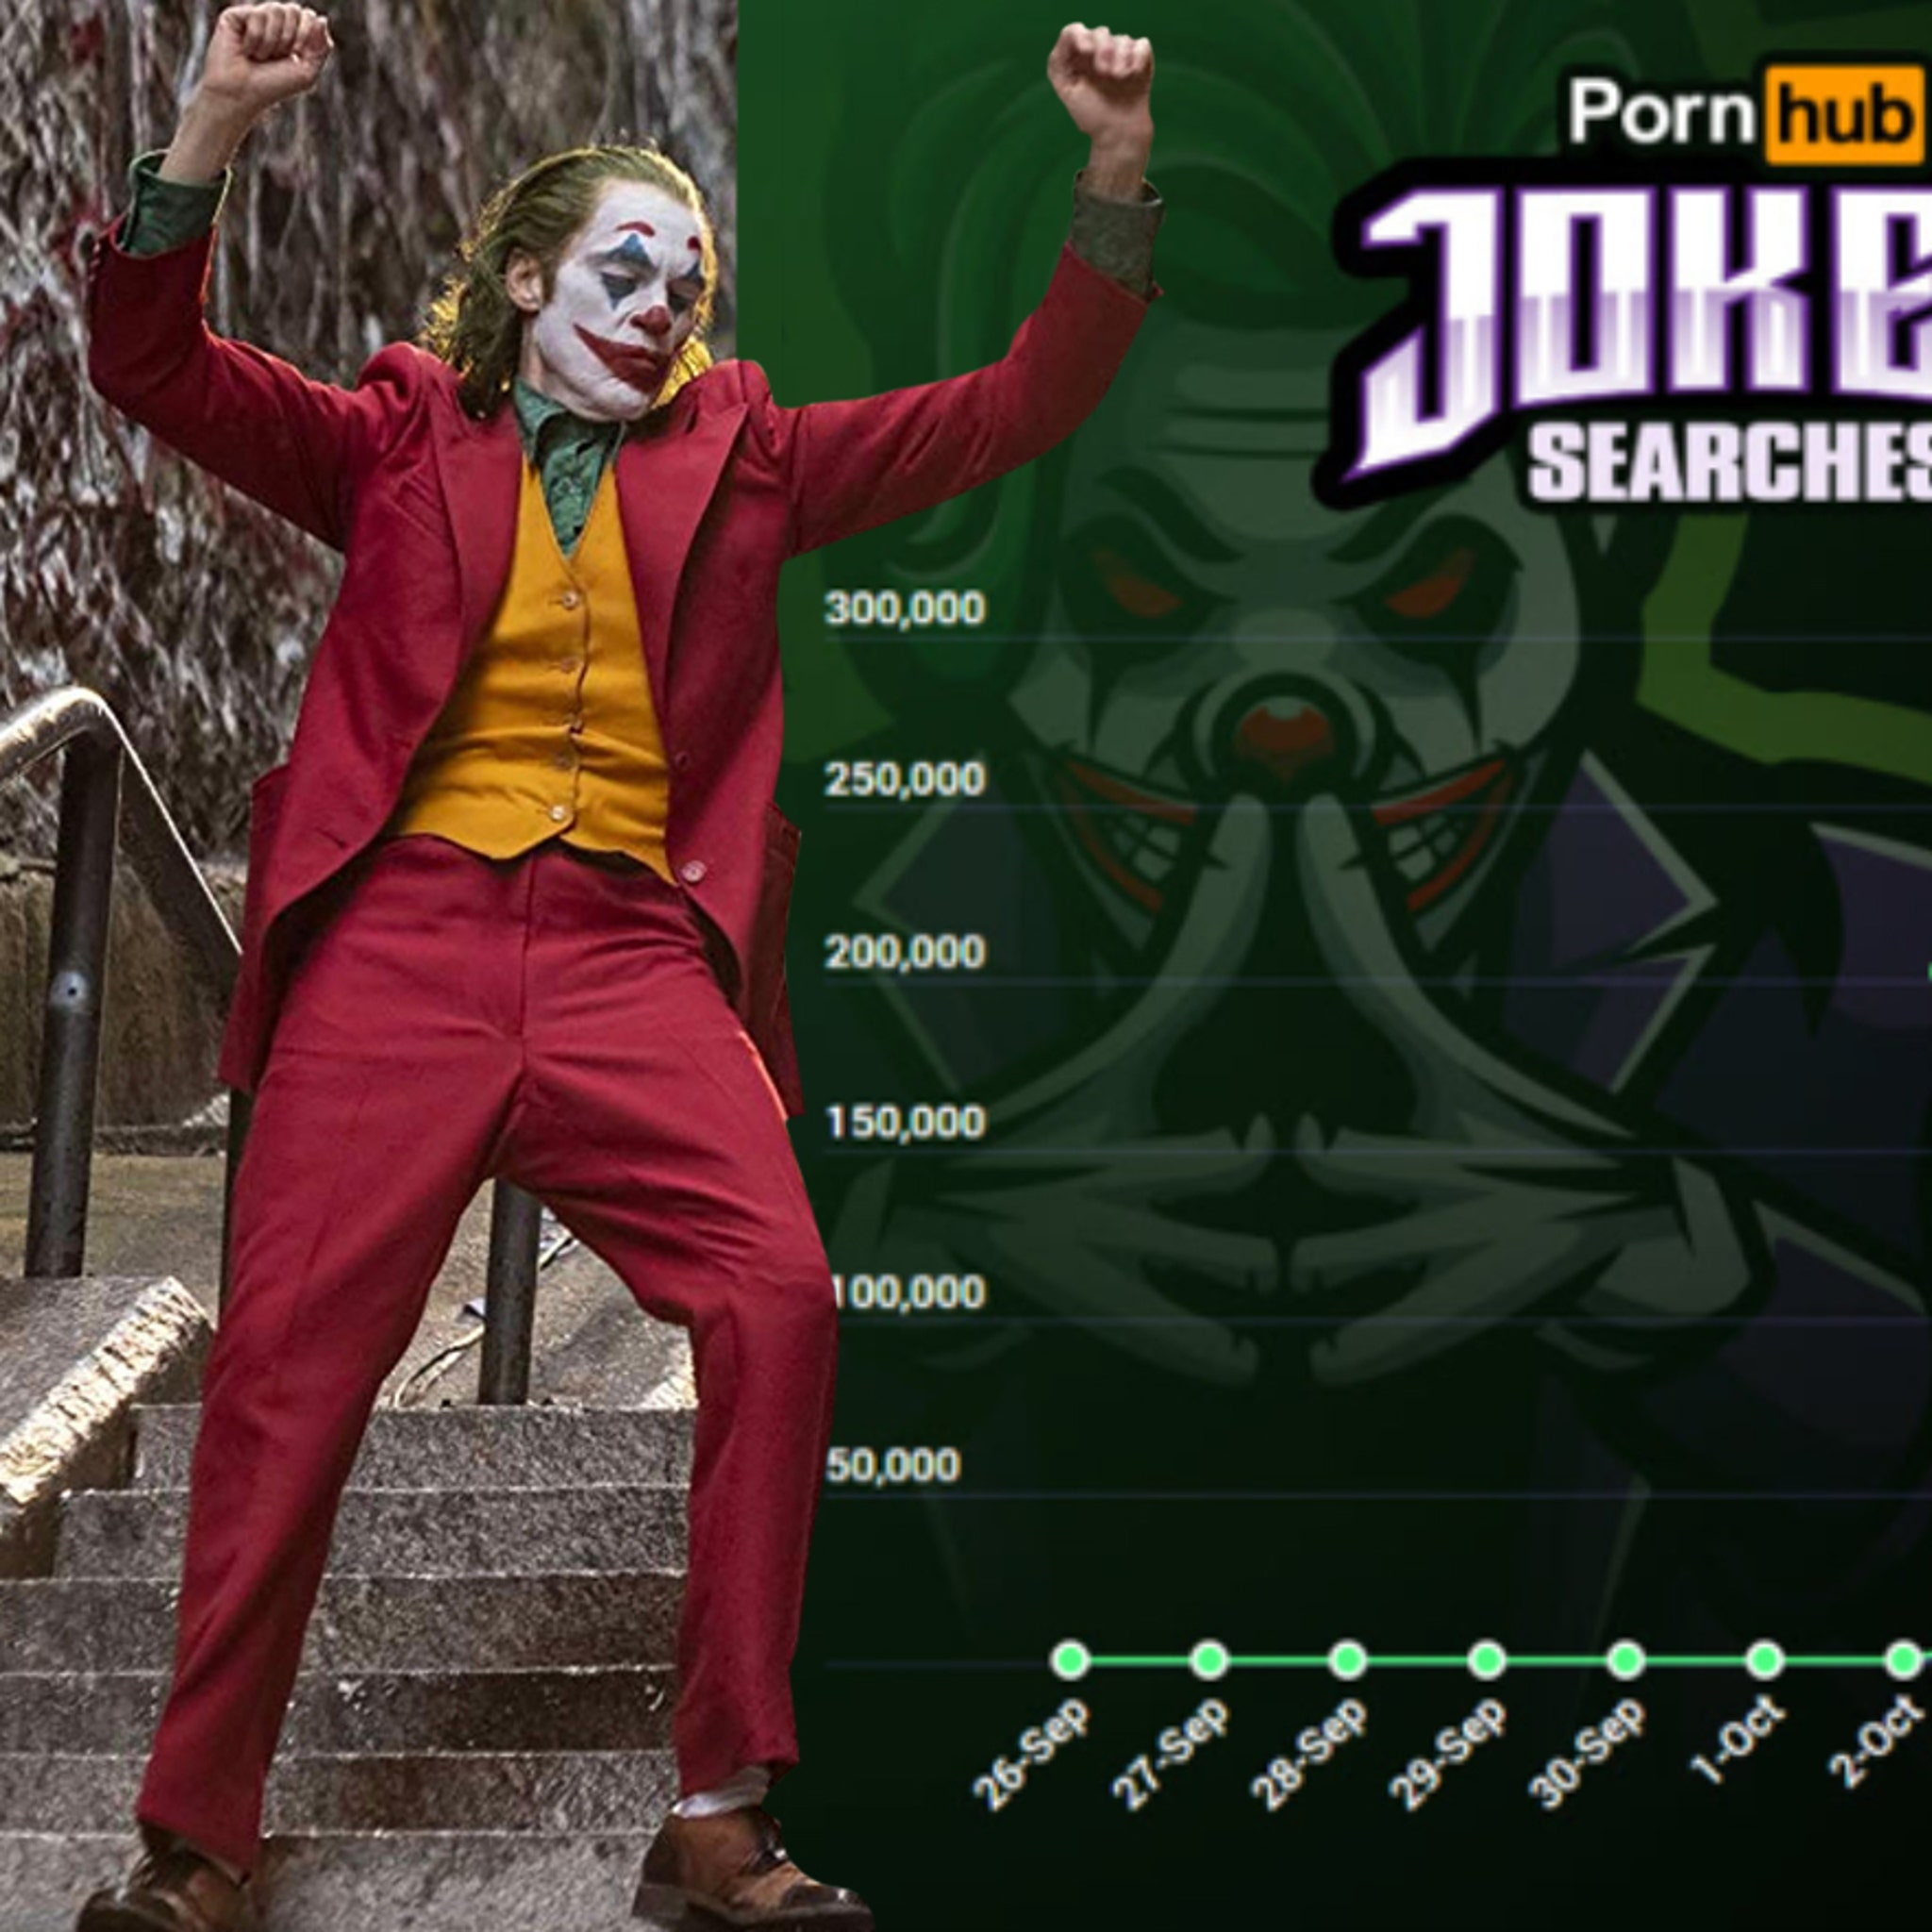 'Joker' Searches Spike on Pornhub After Big Screen Release